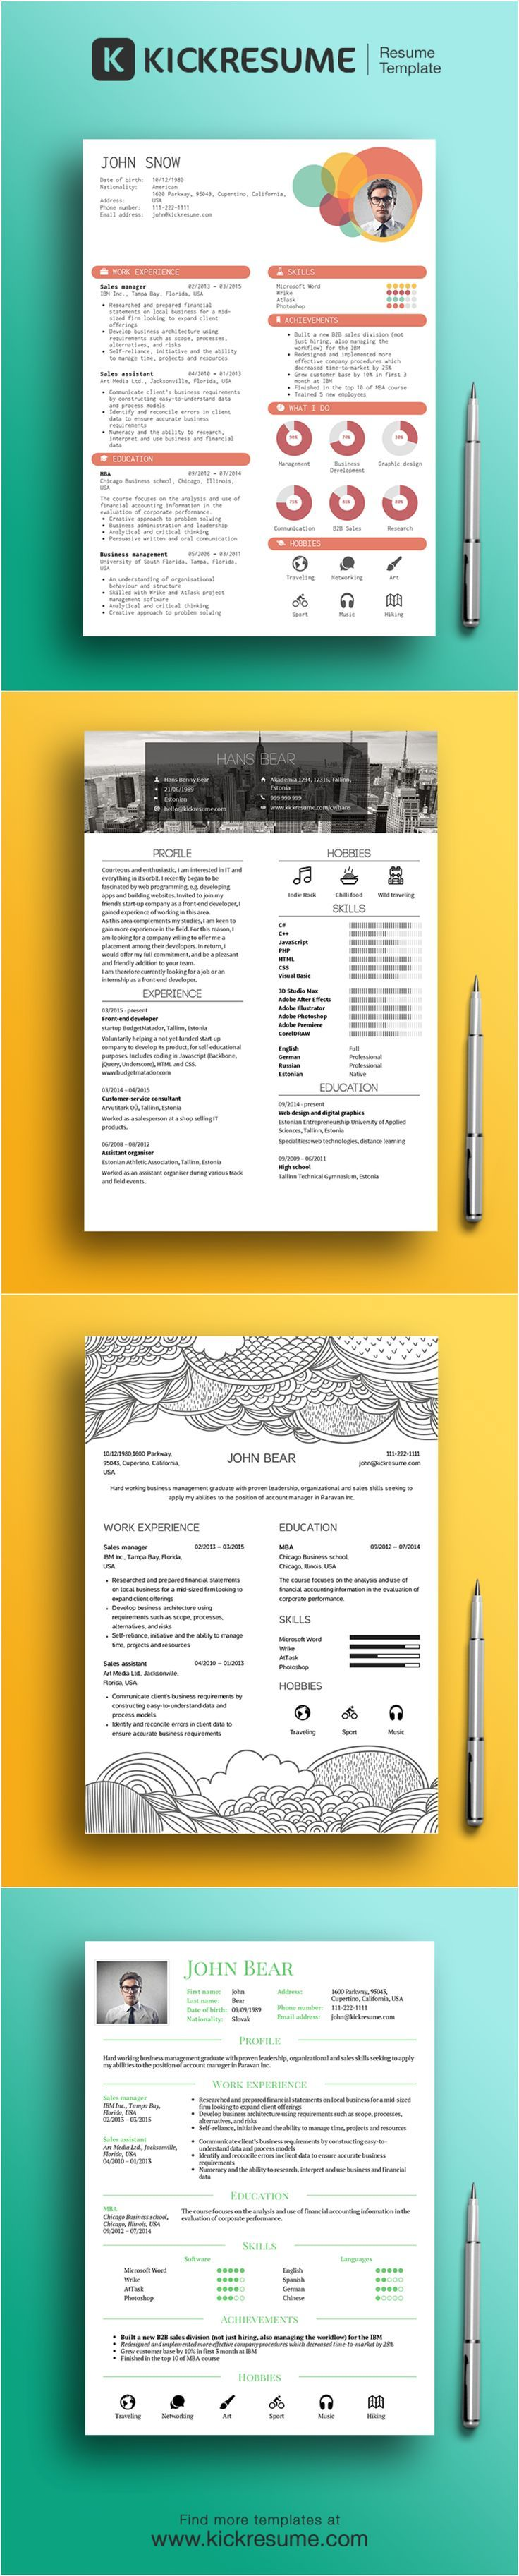 Beautiful infographic #resume templates by www.kickresume.com